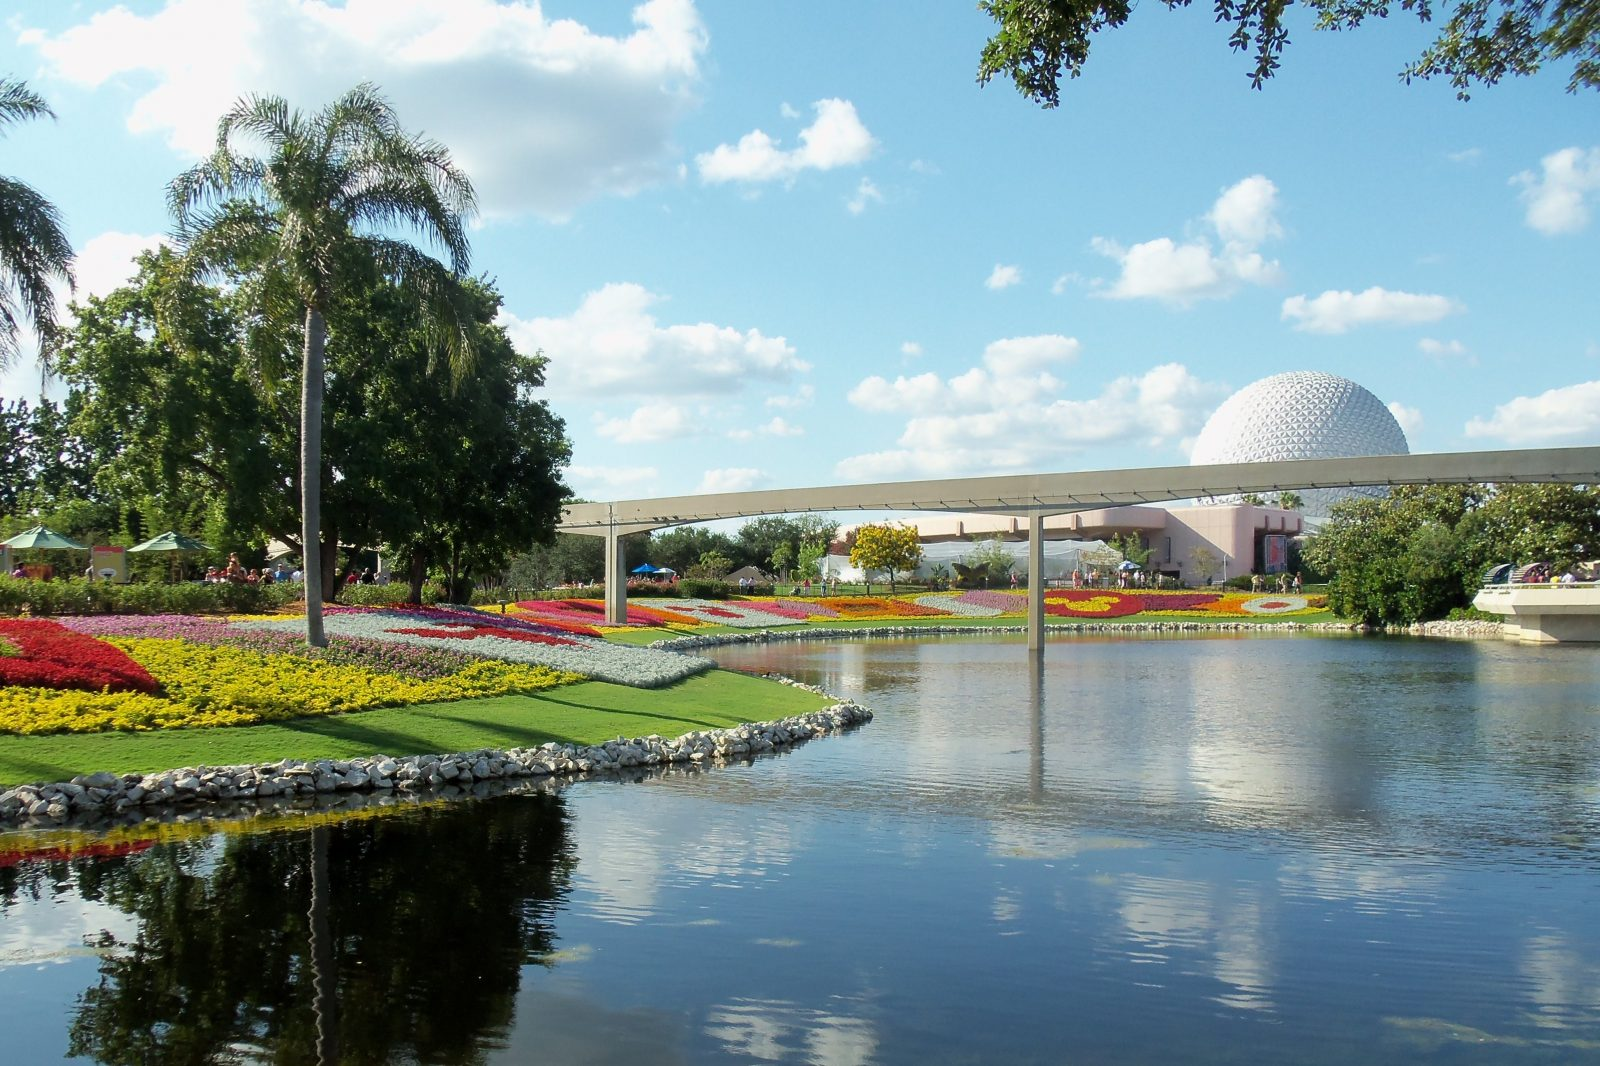 view outside of epcot, colorful flowers, water way, monorail track, and the iconic spaceship earth ride in Epcot